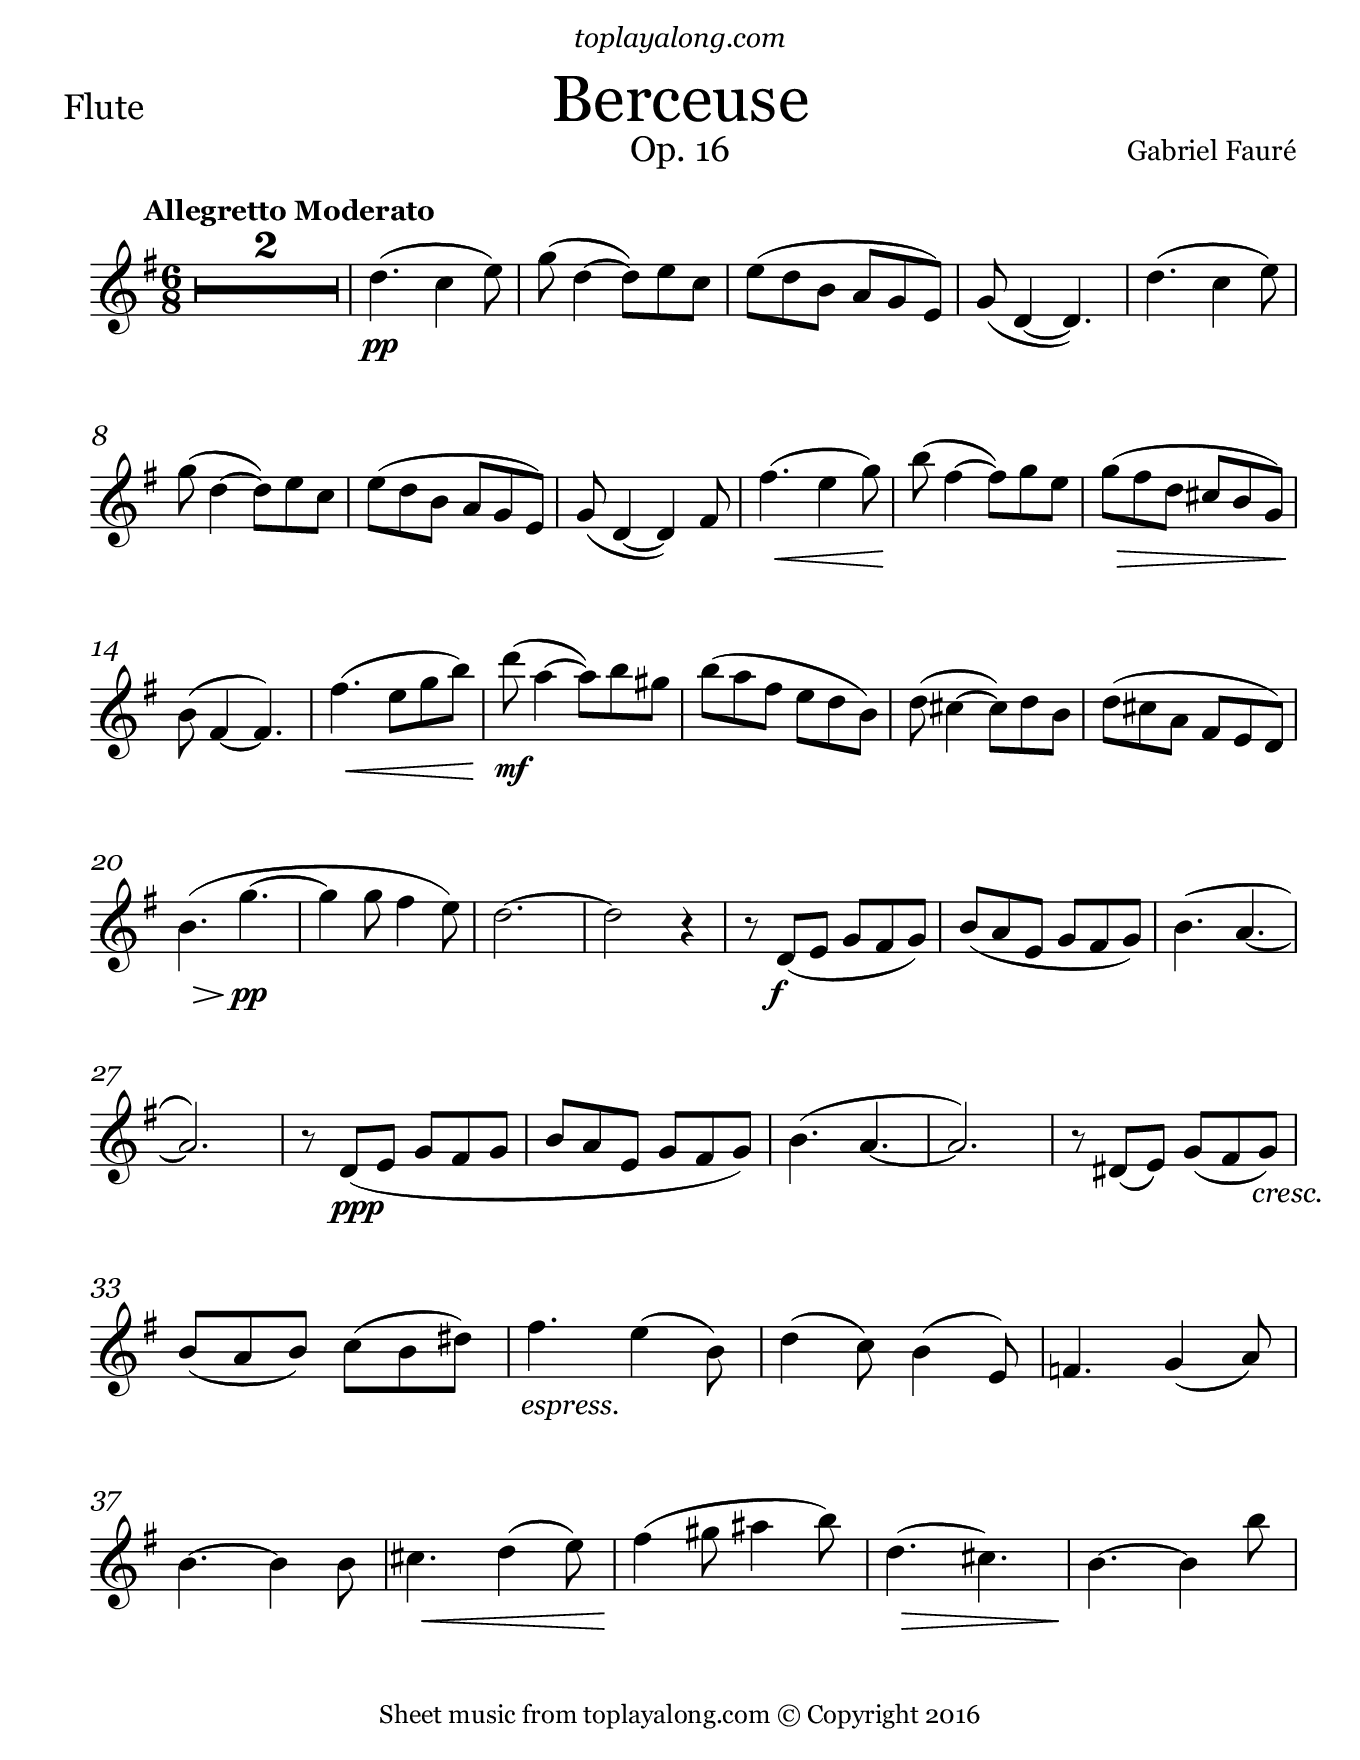 Berceuse by Fauré. Sheet music for Flute, page 1.